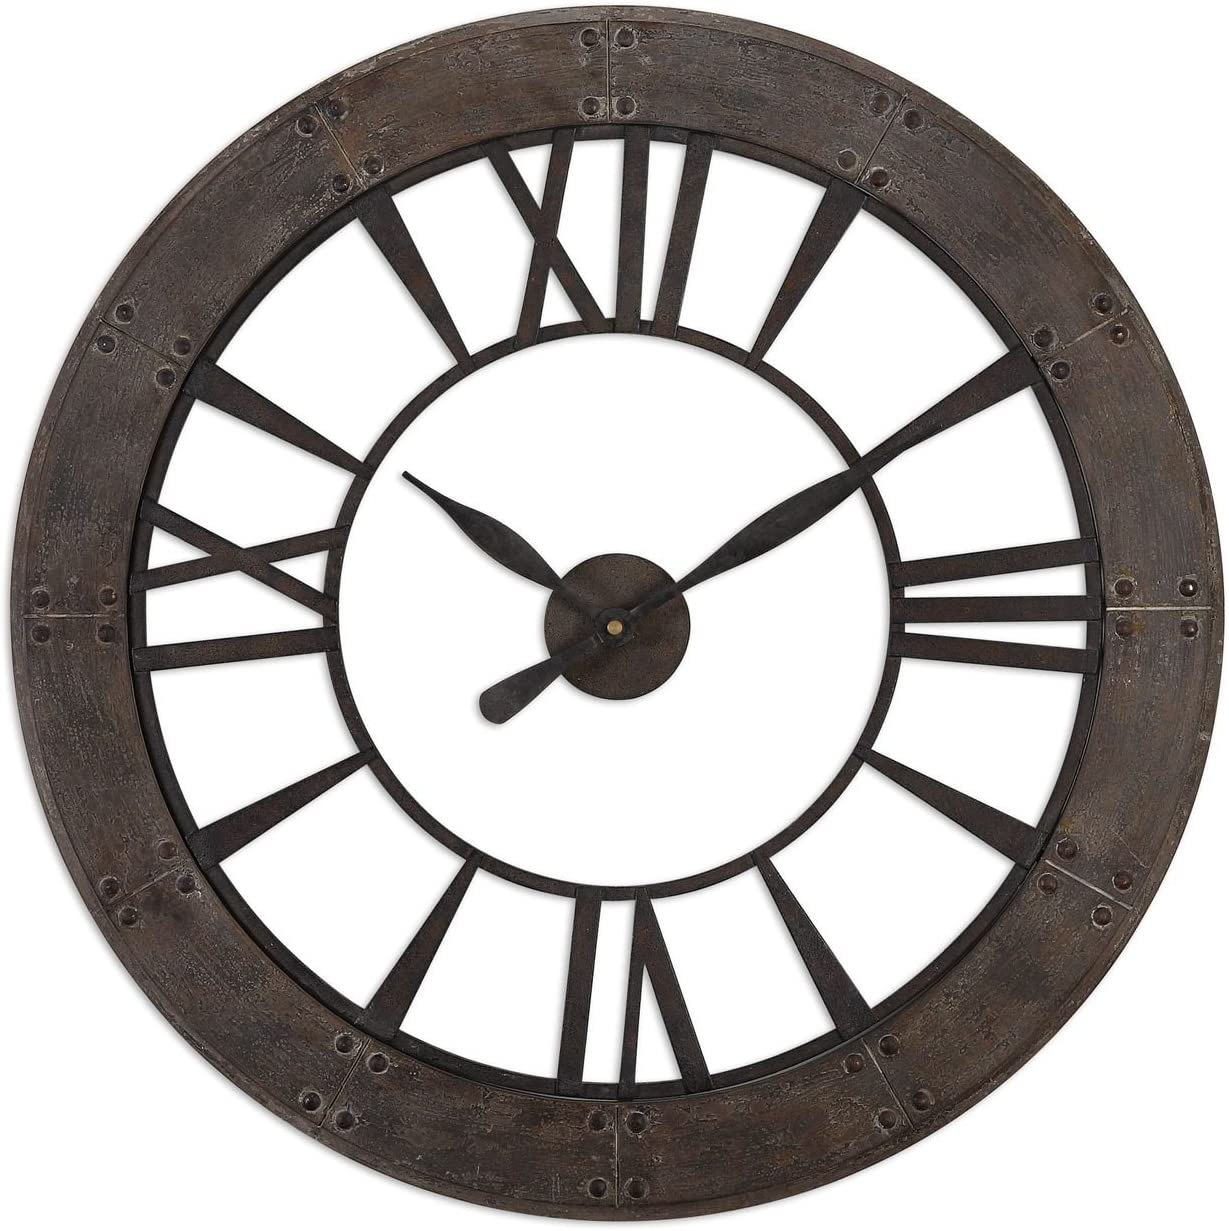 Rustic Round Iron Bronze Wood Wall Clock Large Open Design Distressed